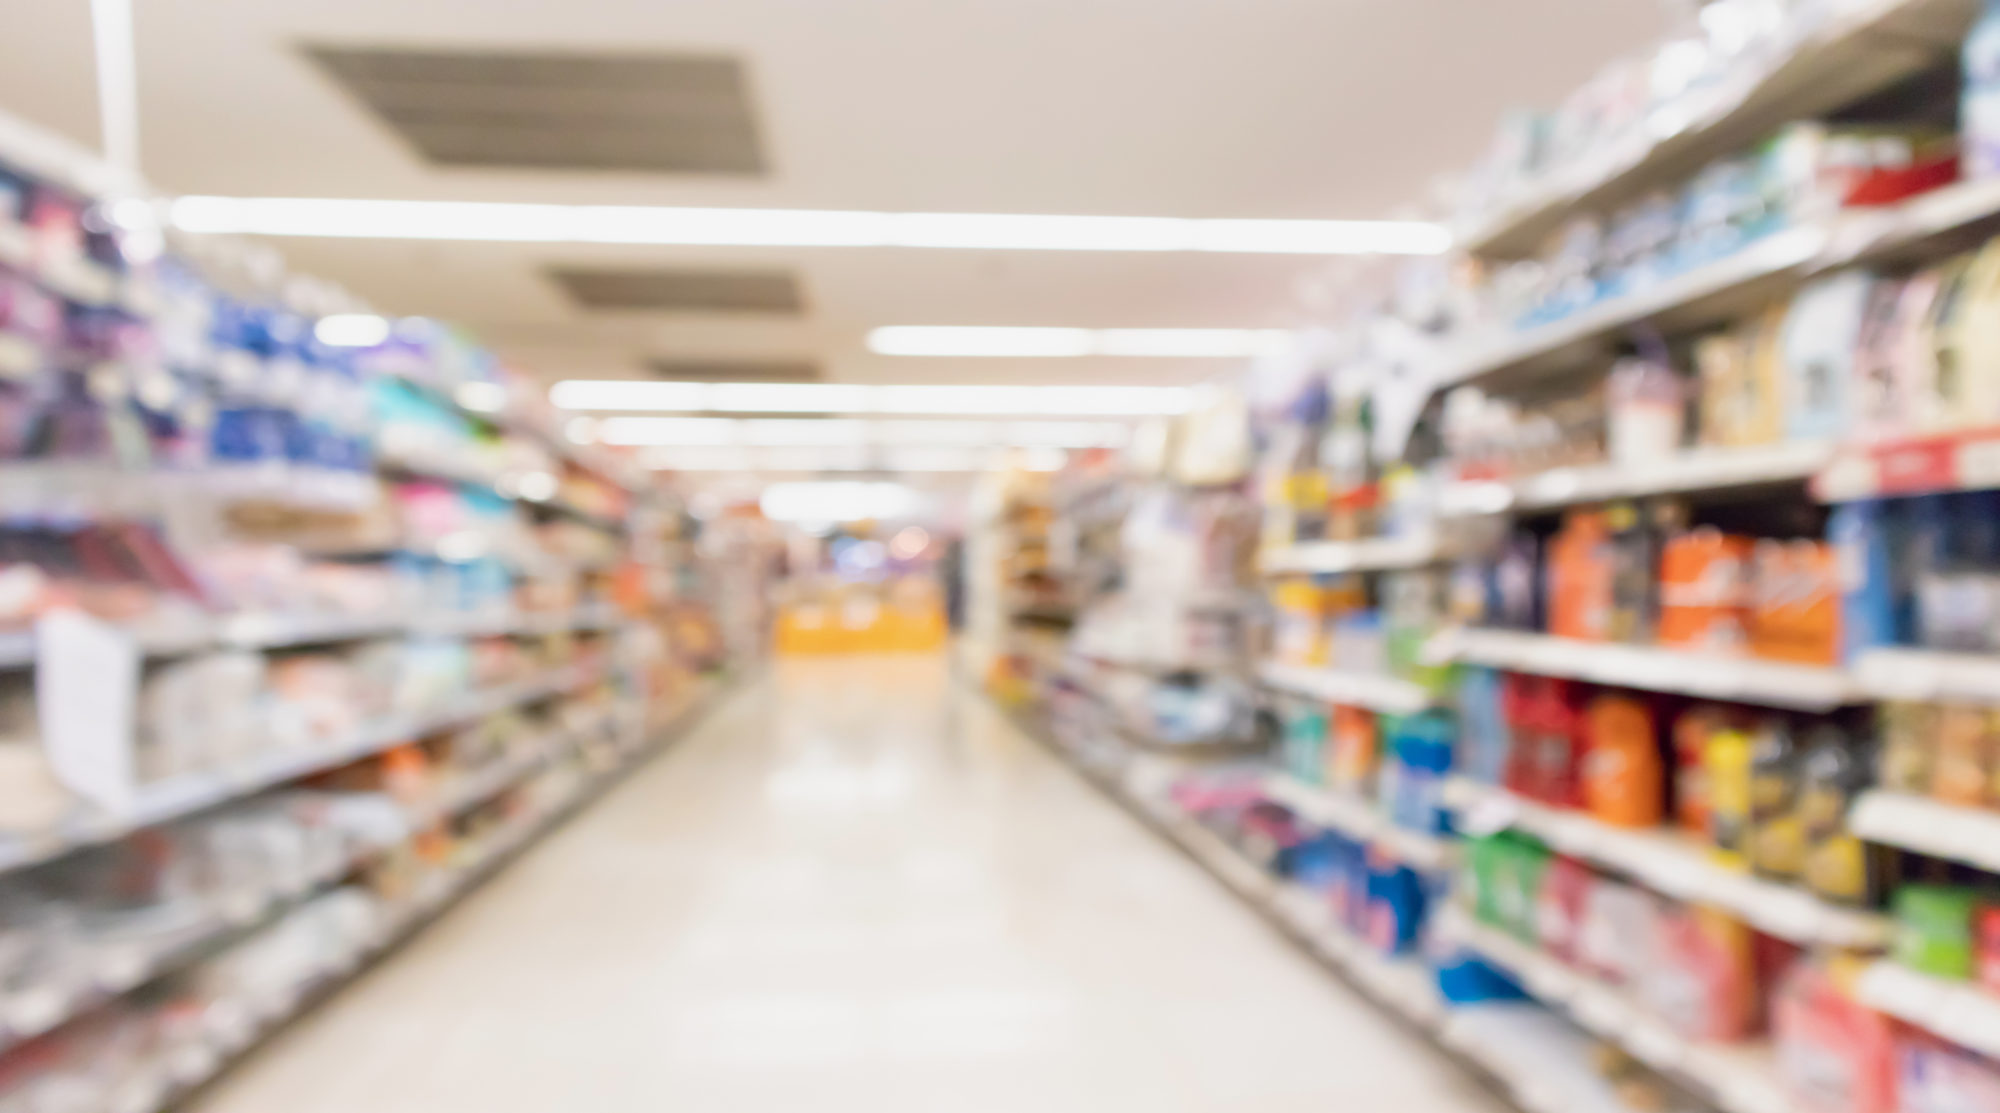 Supermarket aisle with product on shelves blurred background